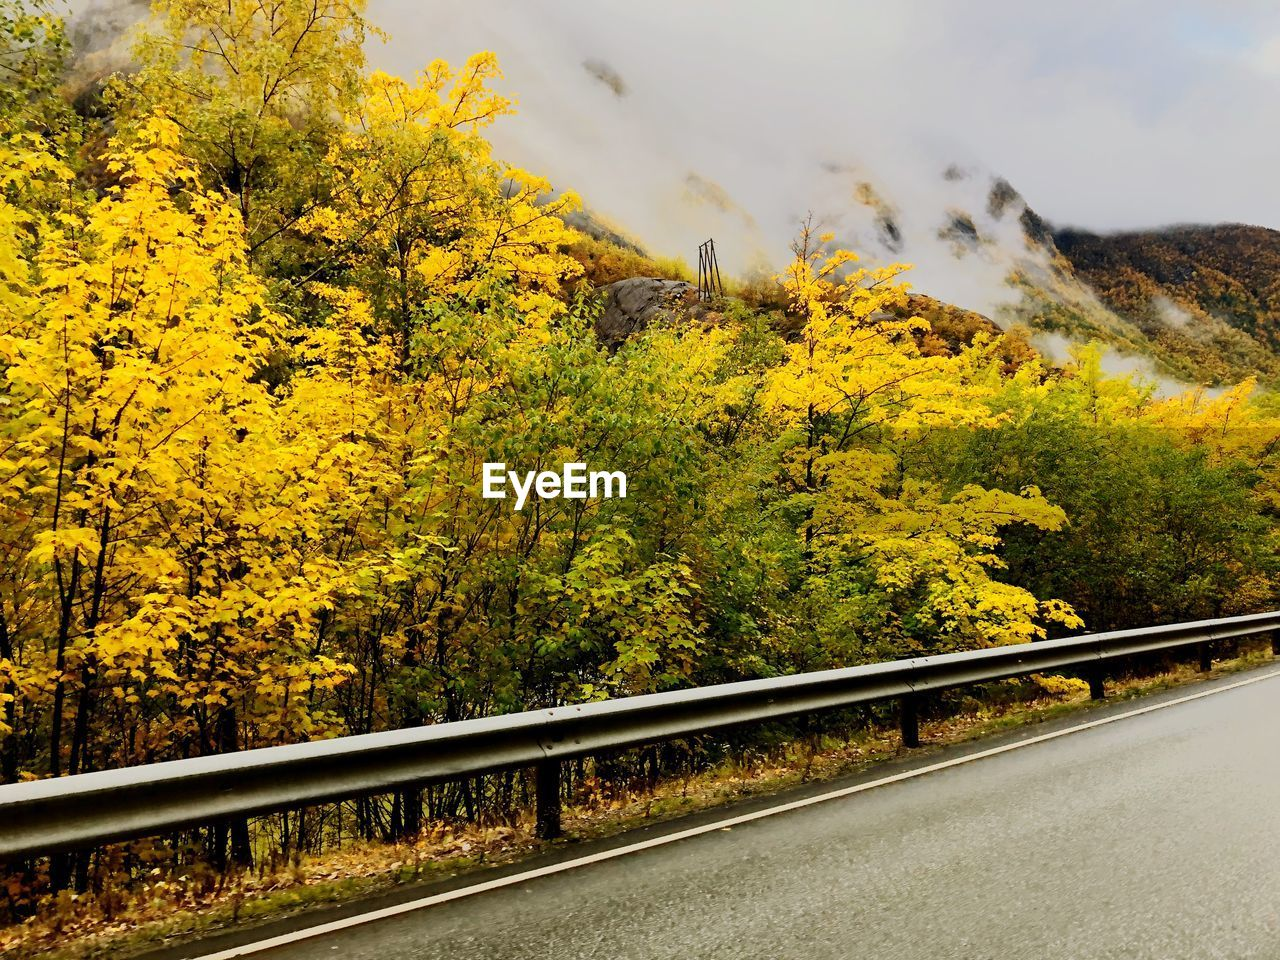 plant, transportation, tree, yellow, beauty in nature, road, nature, no people, day, growth, mountain, scenics - nature, tranquility, sky, outdoors, tranquil scene, non-urban scene, railing, autumn, environment, change, crash barrier